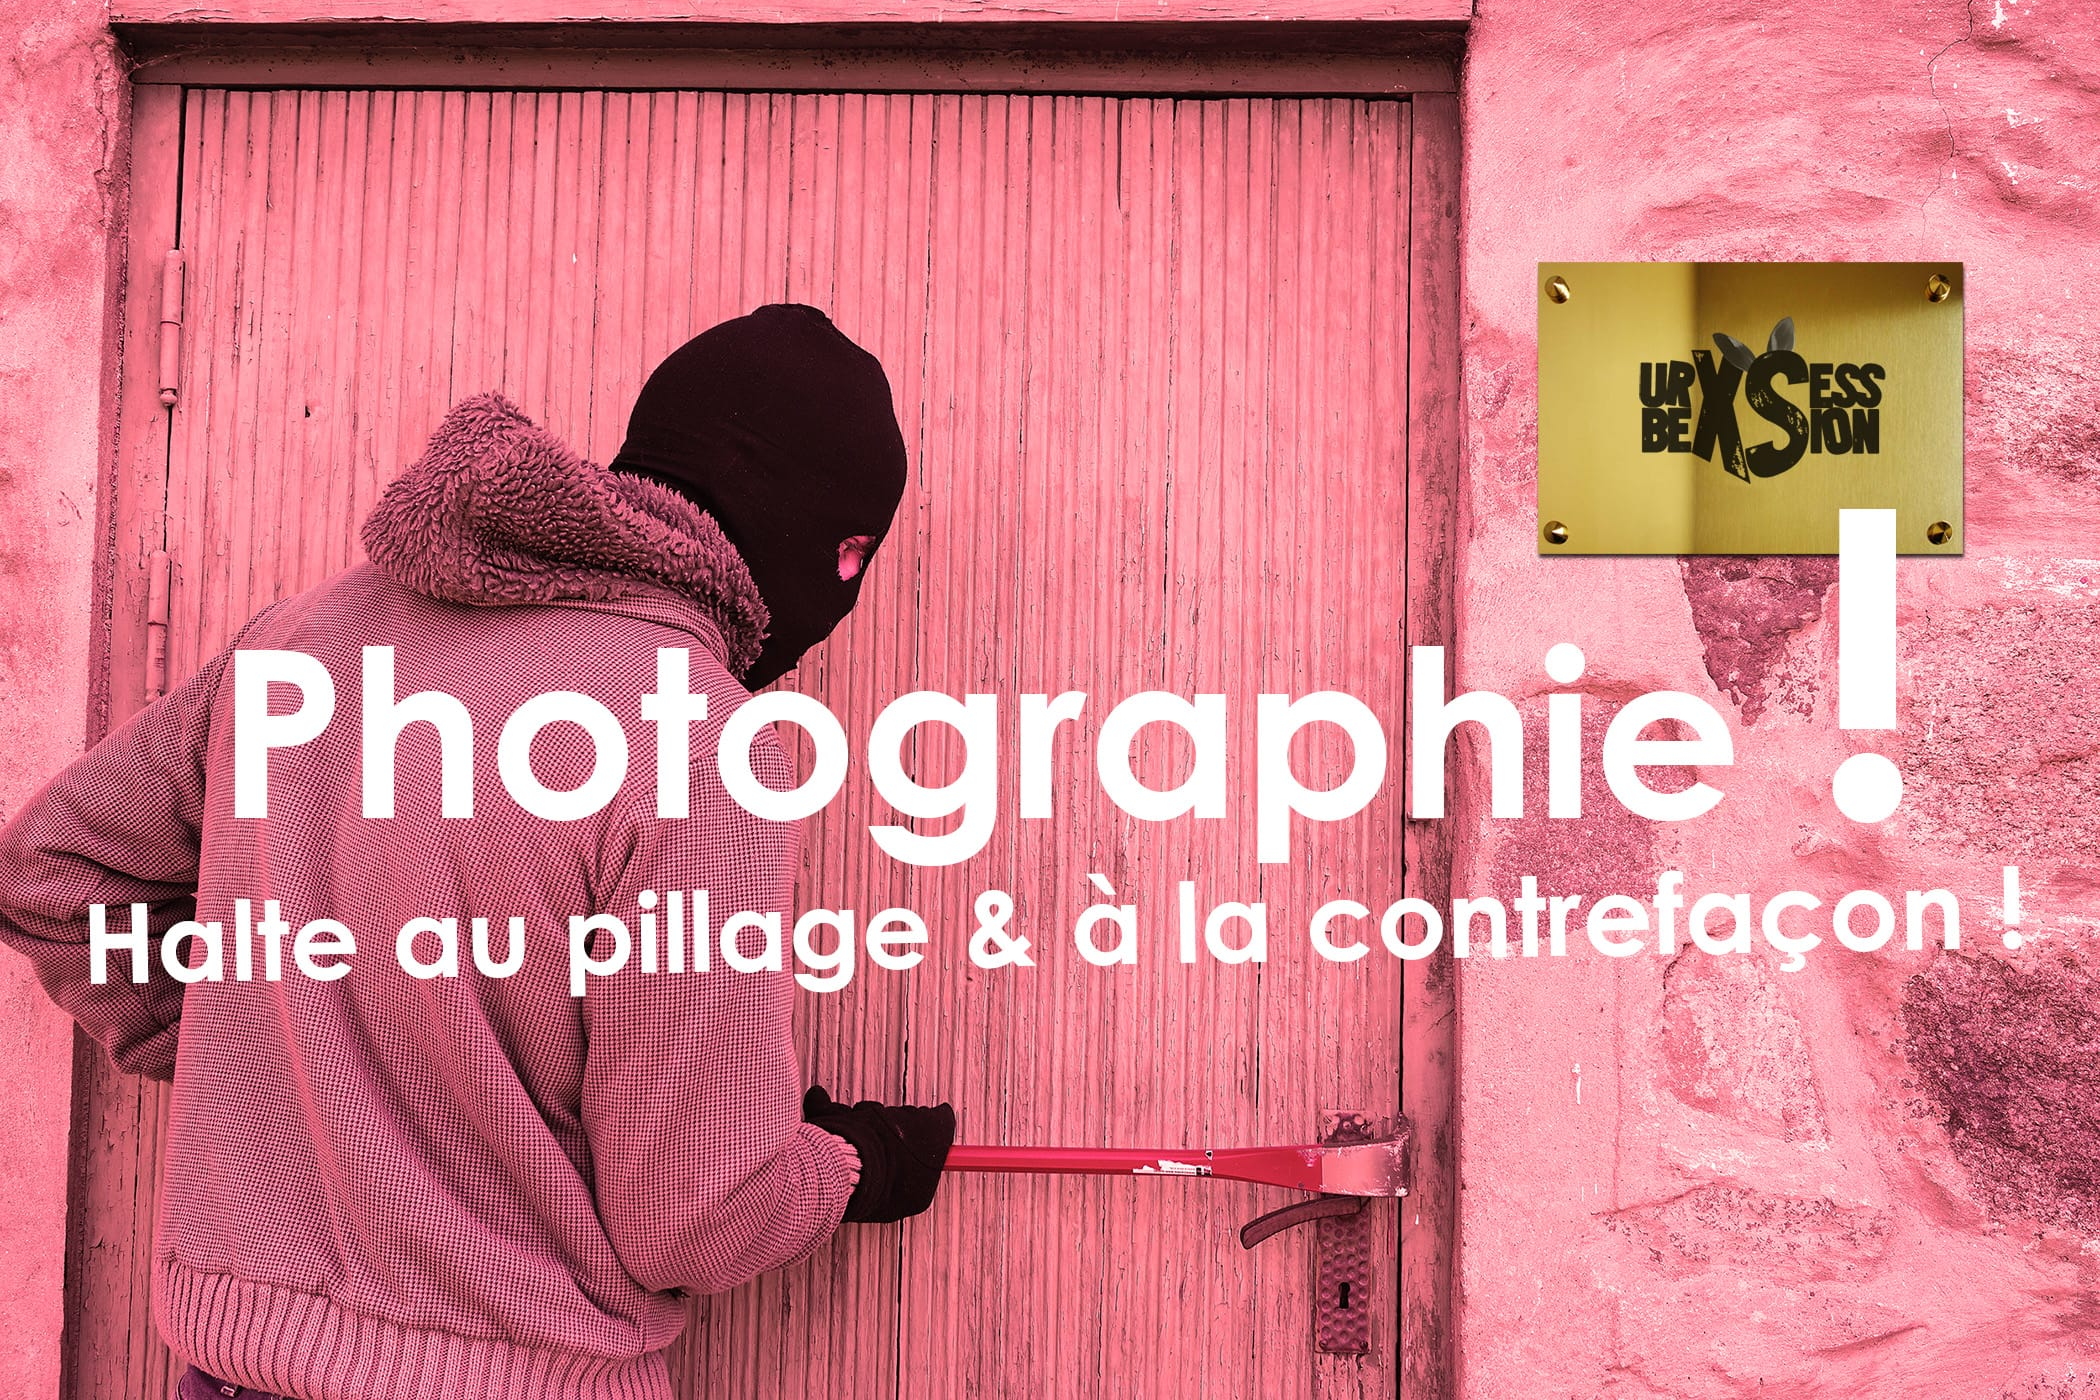 photographie-pillage-contrefacon